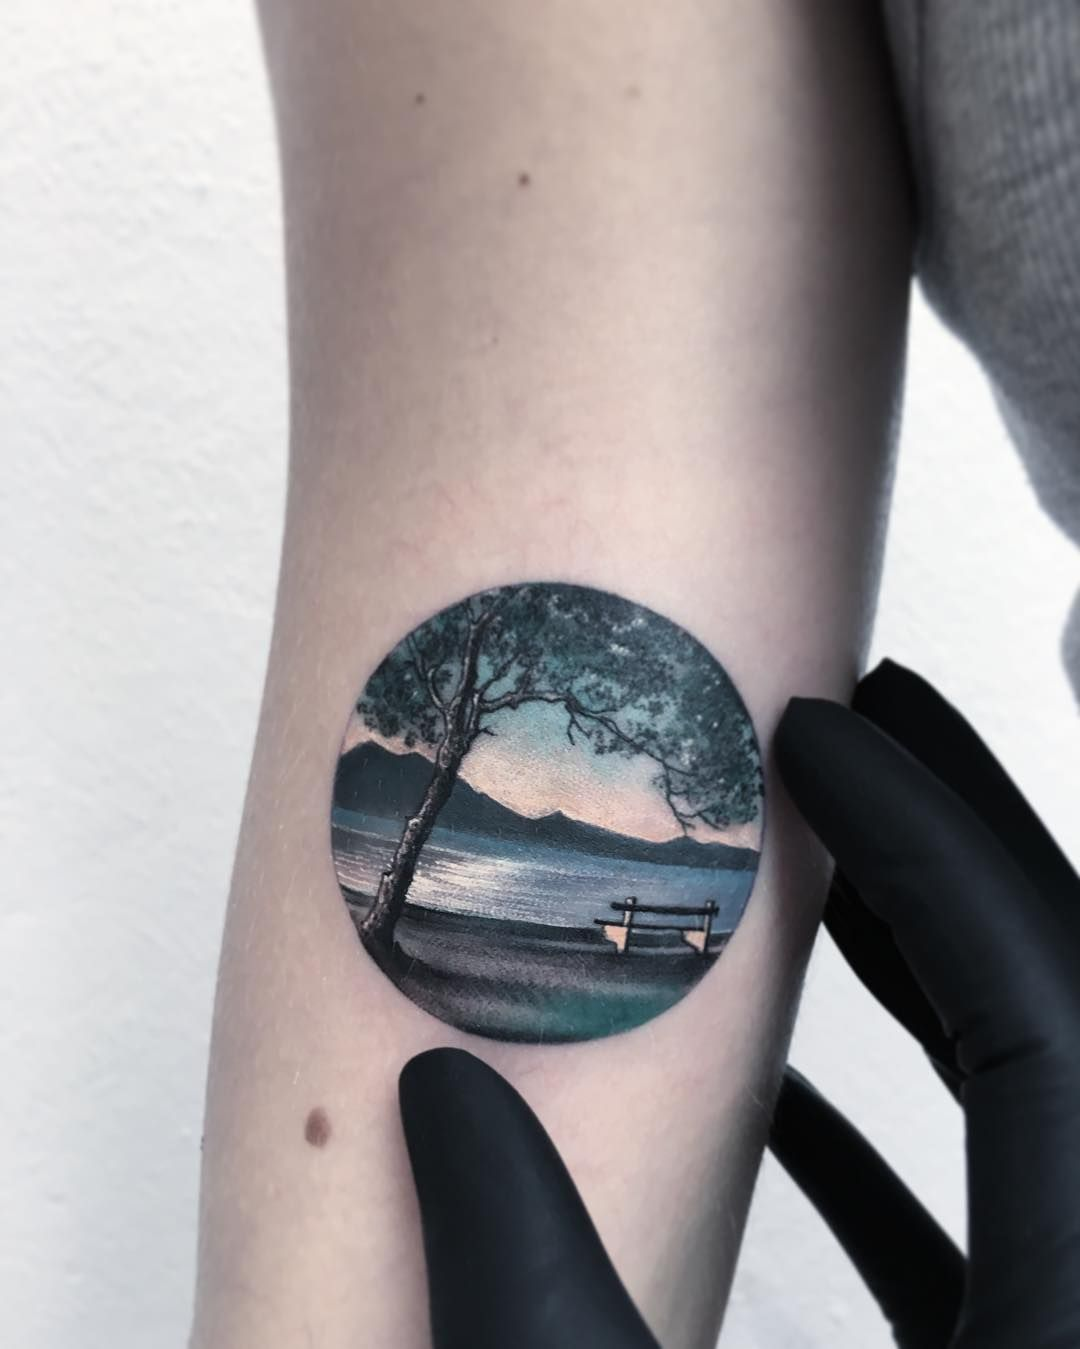 round tattoos by eva krdbk tell fantastic stories pinterest rh pinterest com round tattoo designs round tattoo designs